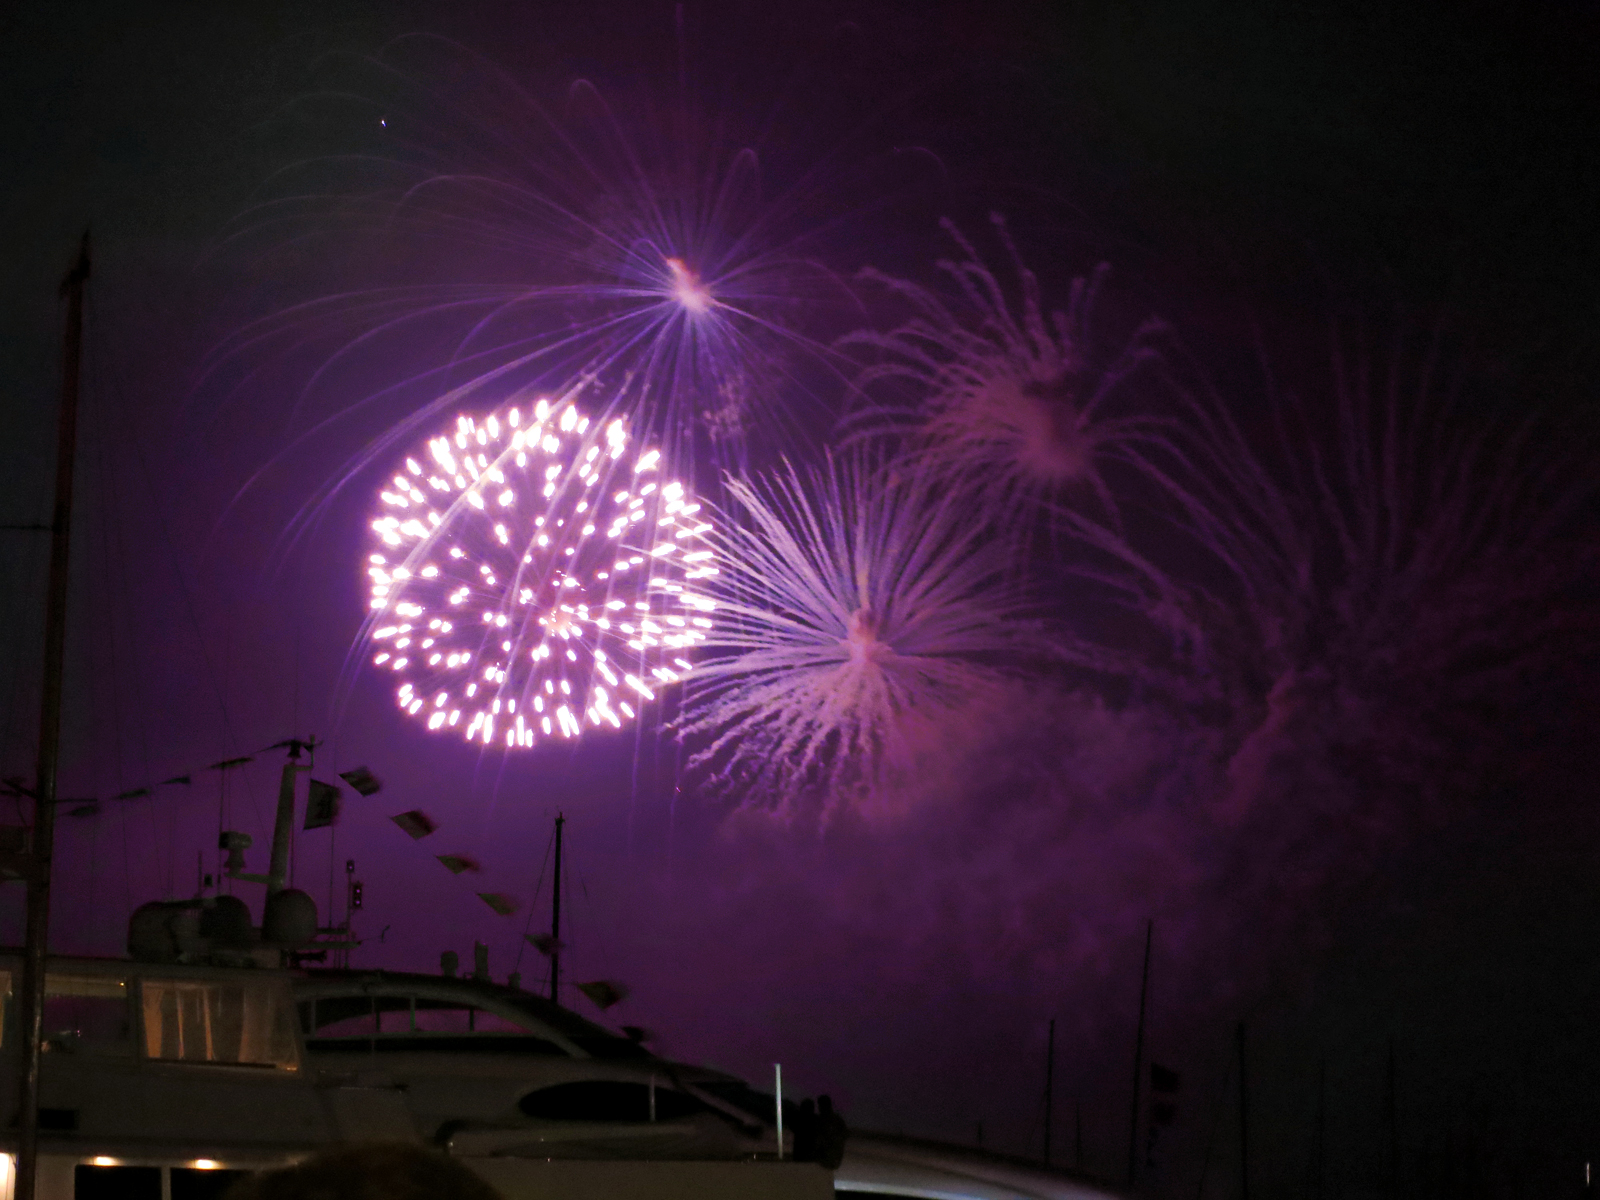 ROCKET'S RED GLARE OVER NEWPORT HARBOR - live. travel. adventure. bless. | Bright purple firework lighting up the sky over Newport Harbor in Newport, RI. Happy 4th of July!